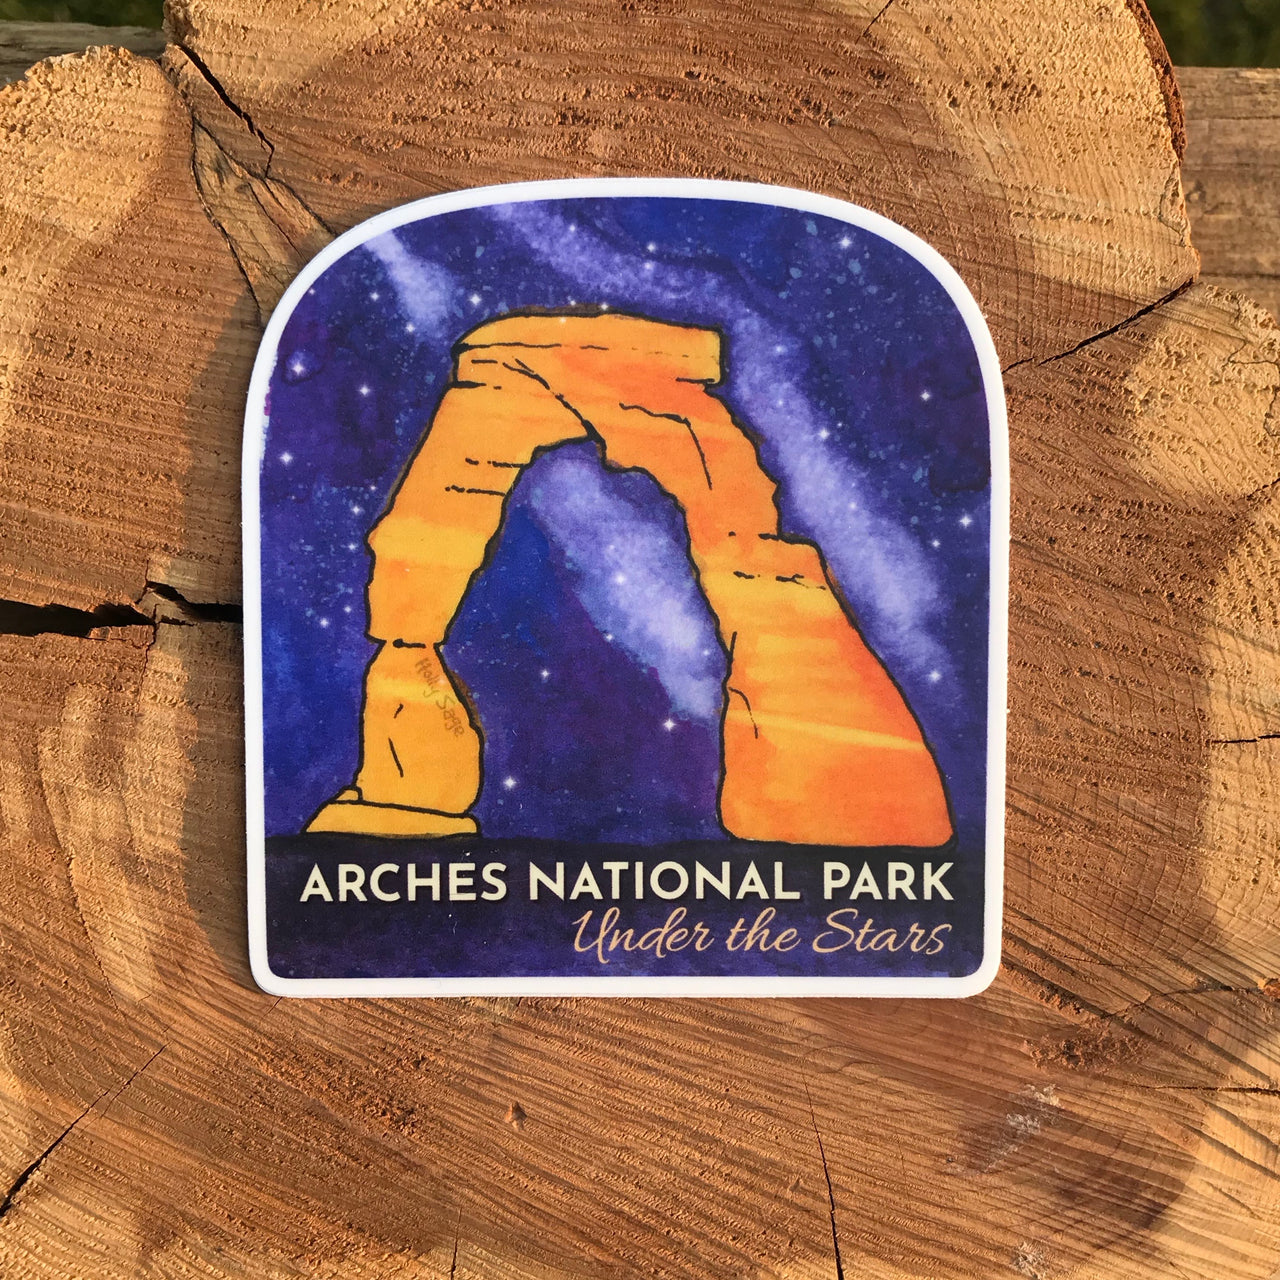 Arches National Park Under the Stars sticker